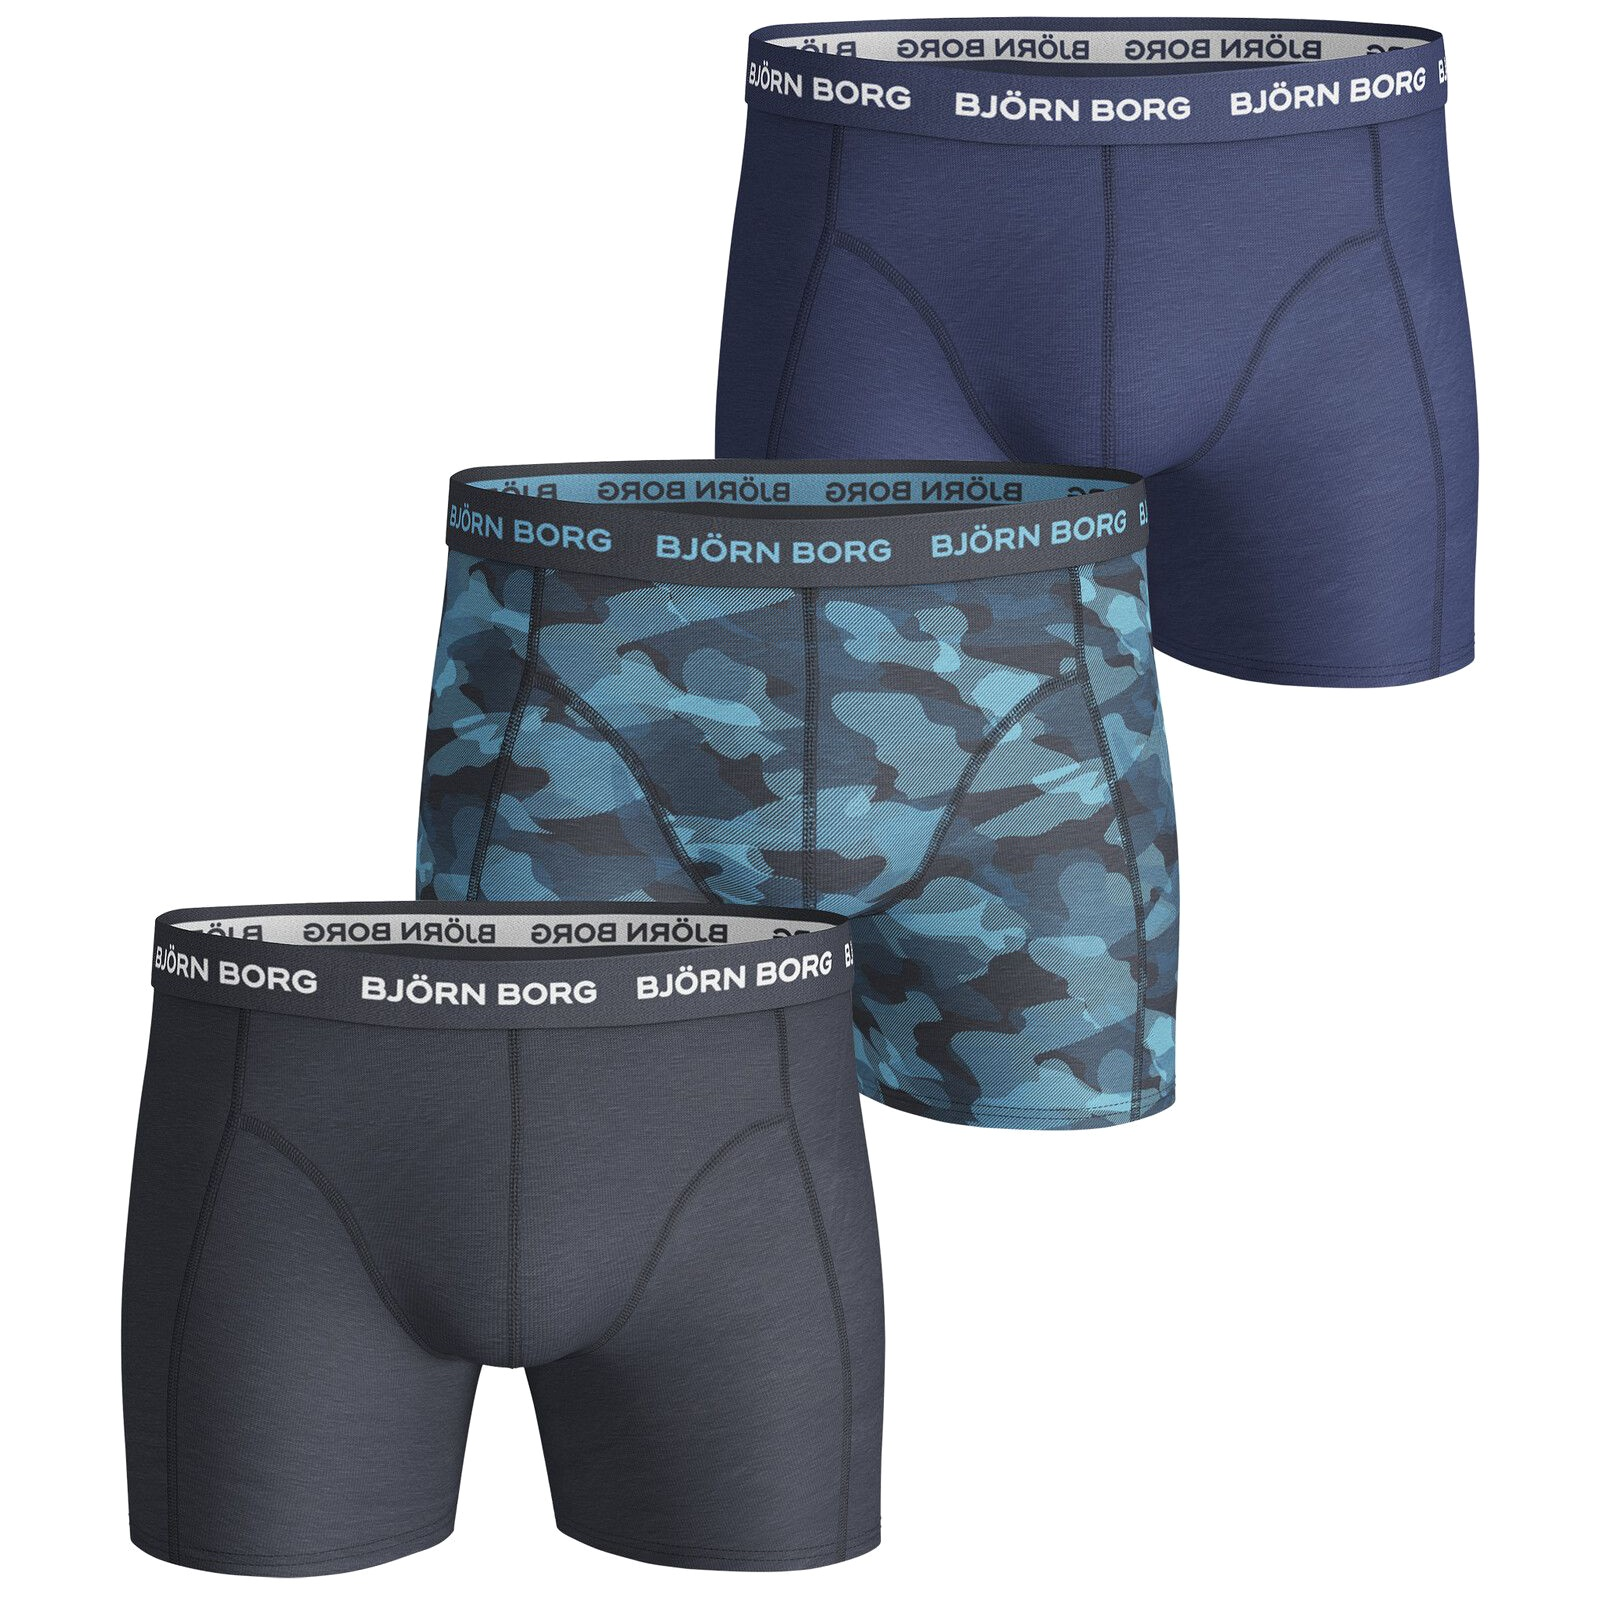 3-Pack Boxers Total Eclipse Shade